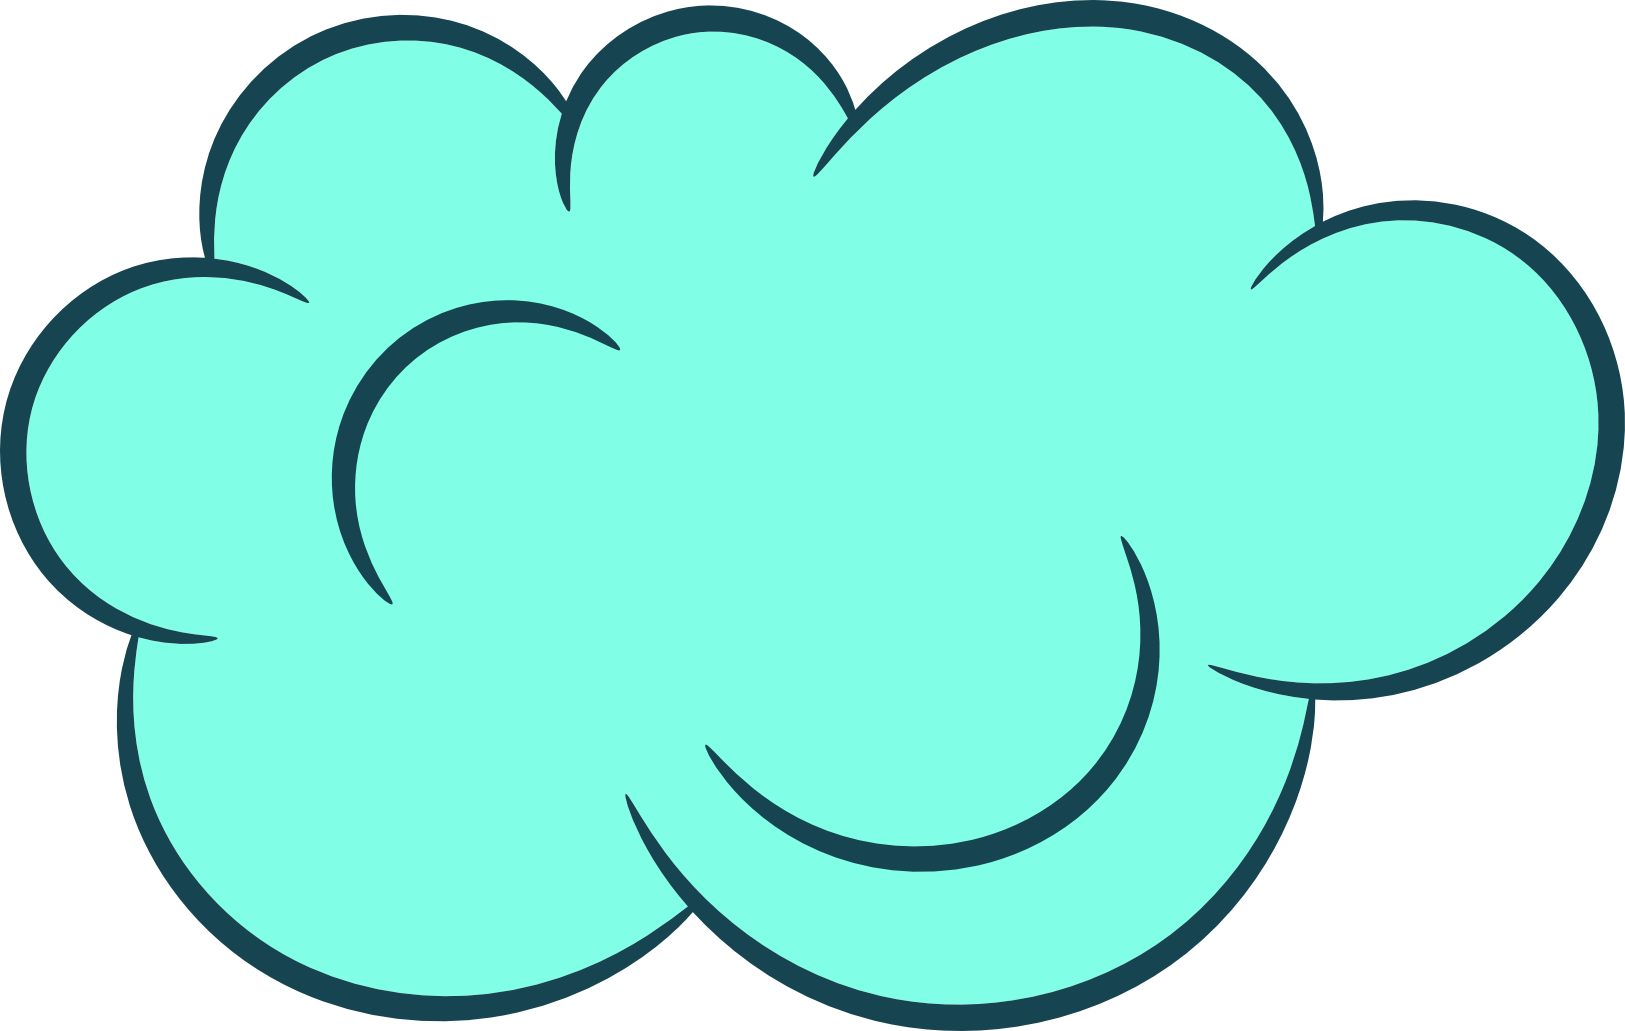 Clouds png transparent. Cartoon onlygfx com